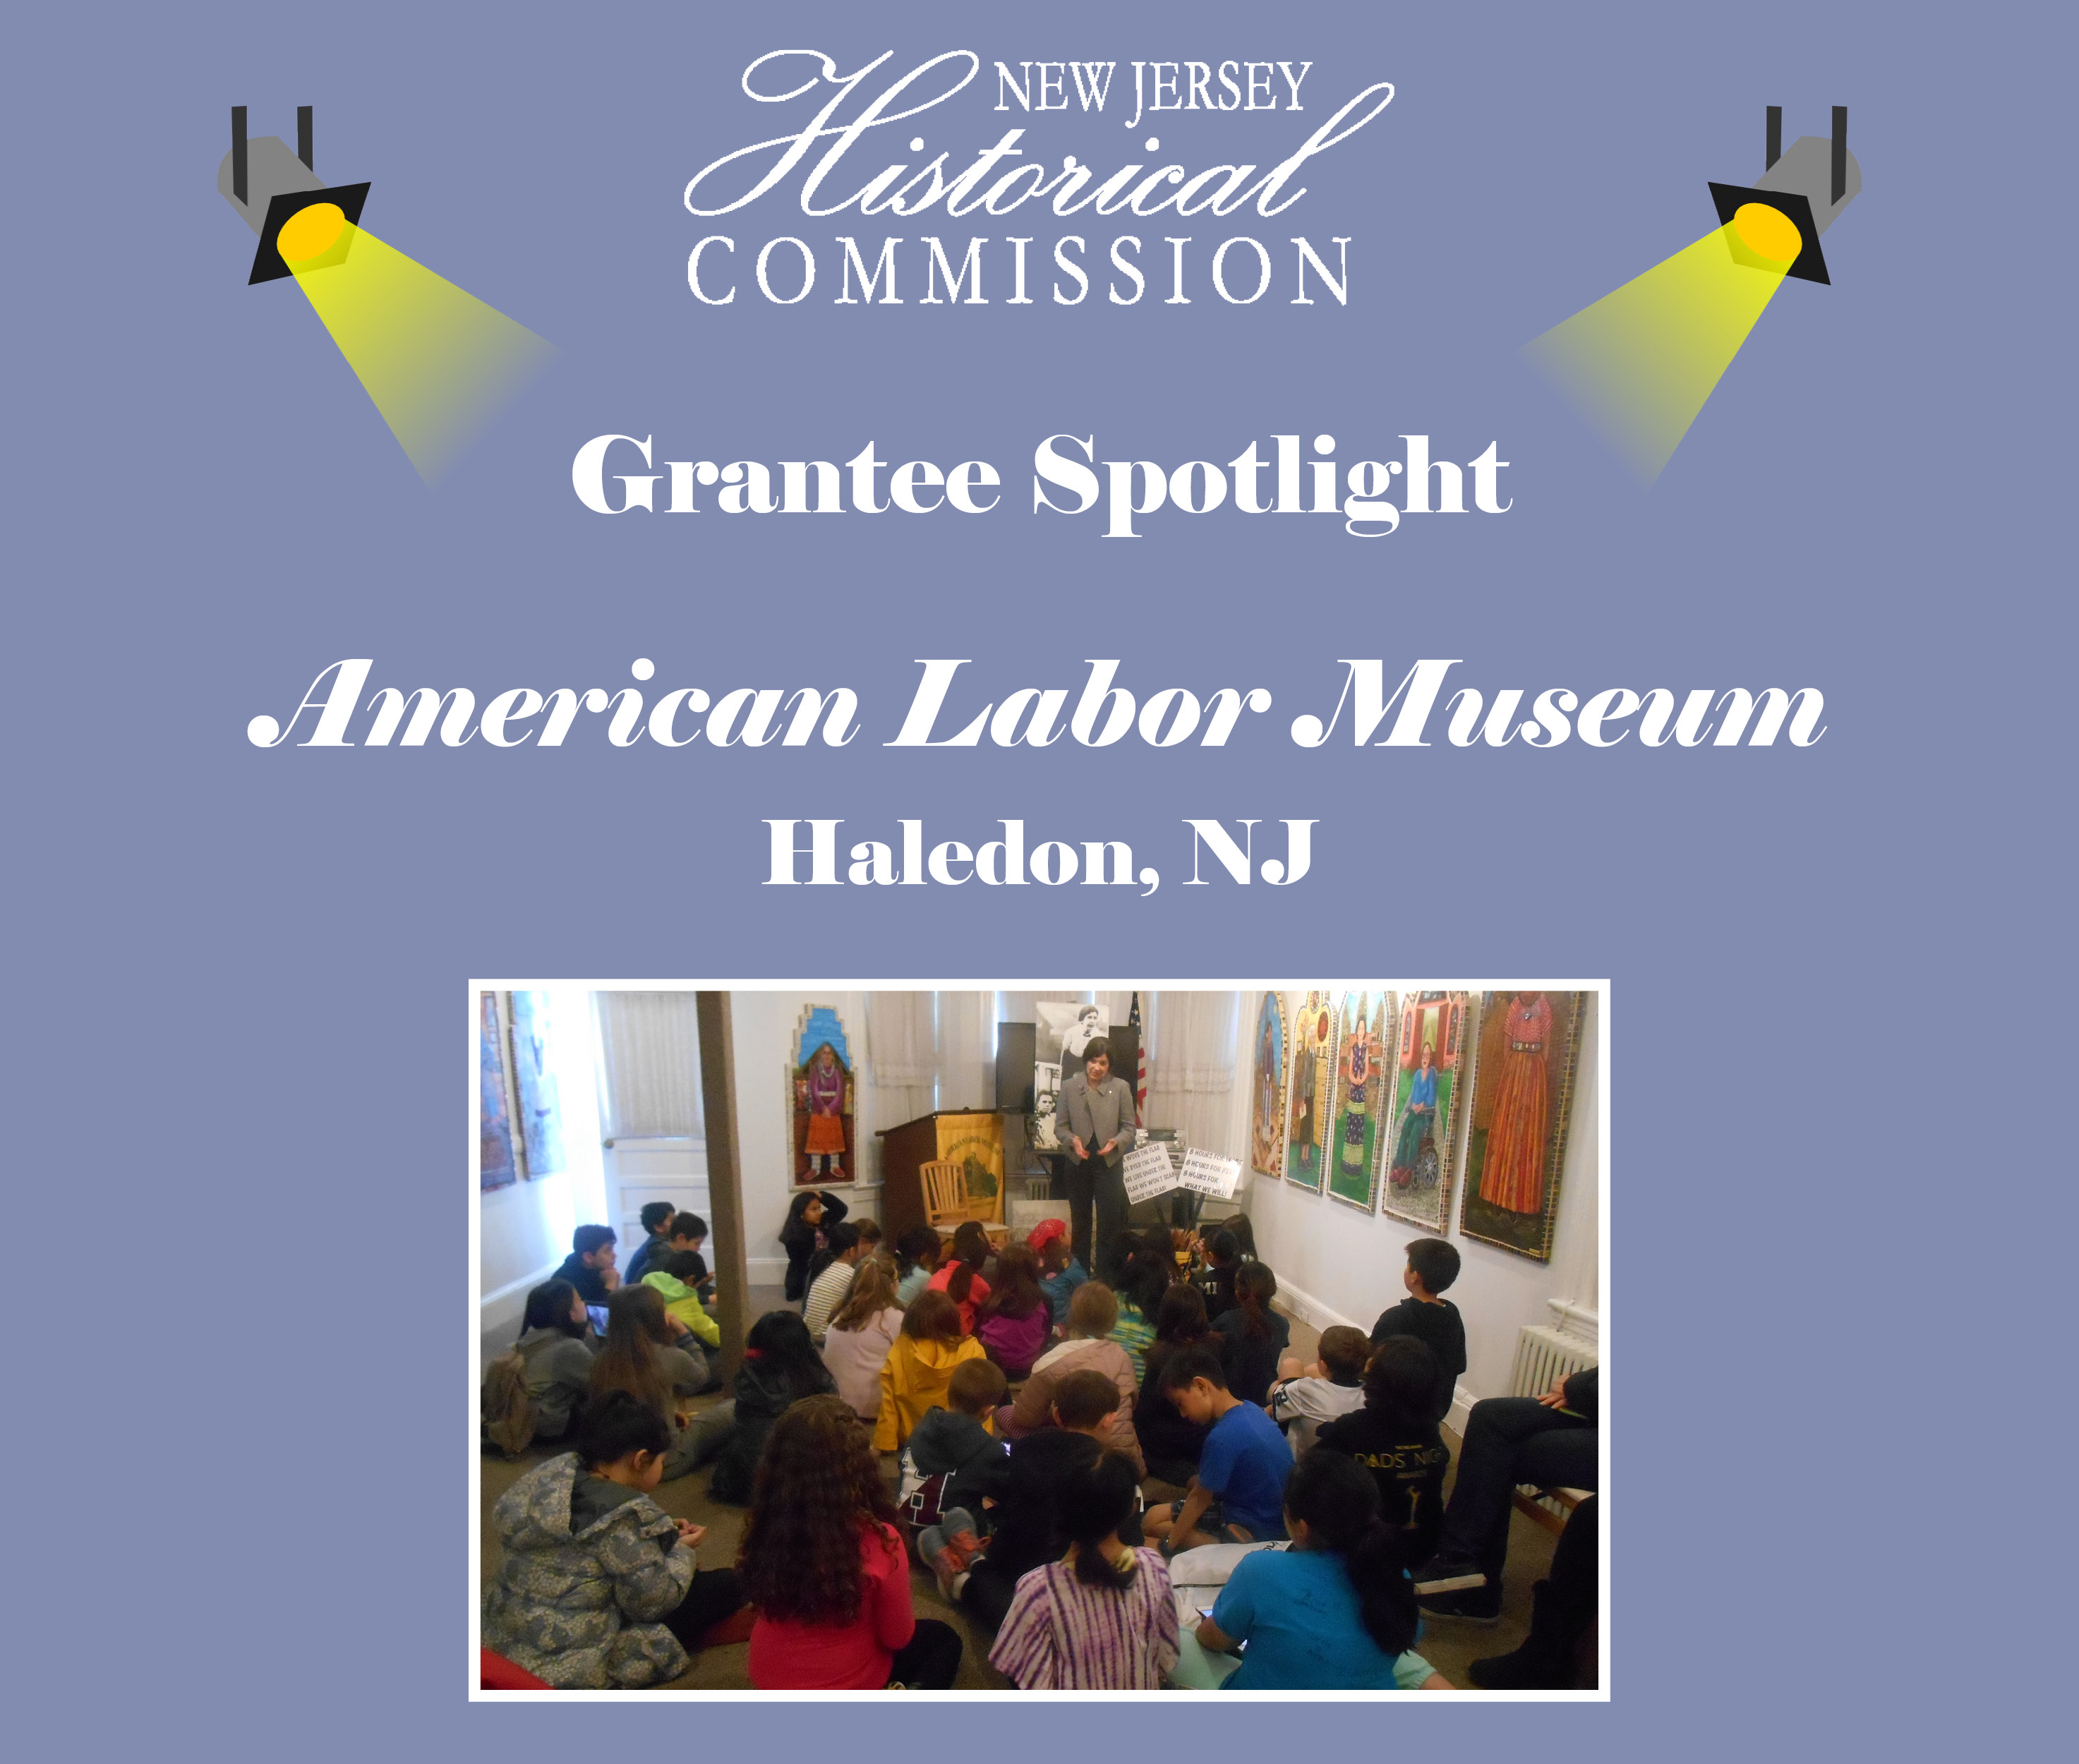 New Jersey Historical Commission (NJHC) Grantee Spotlight: The American Labor Museum